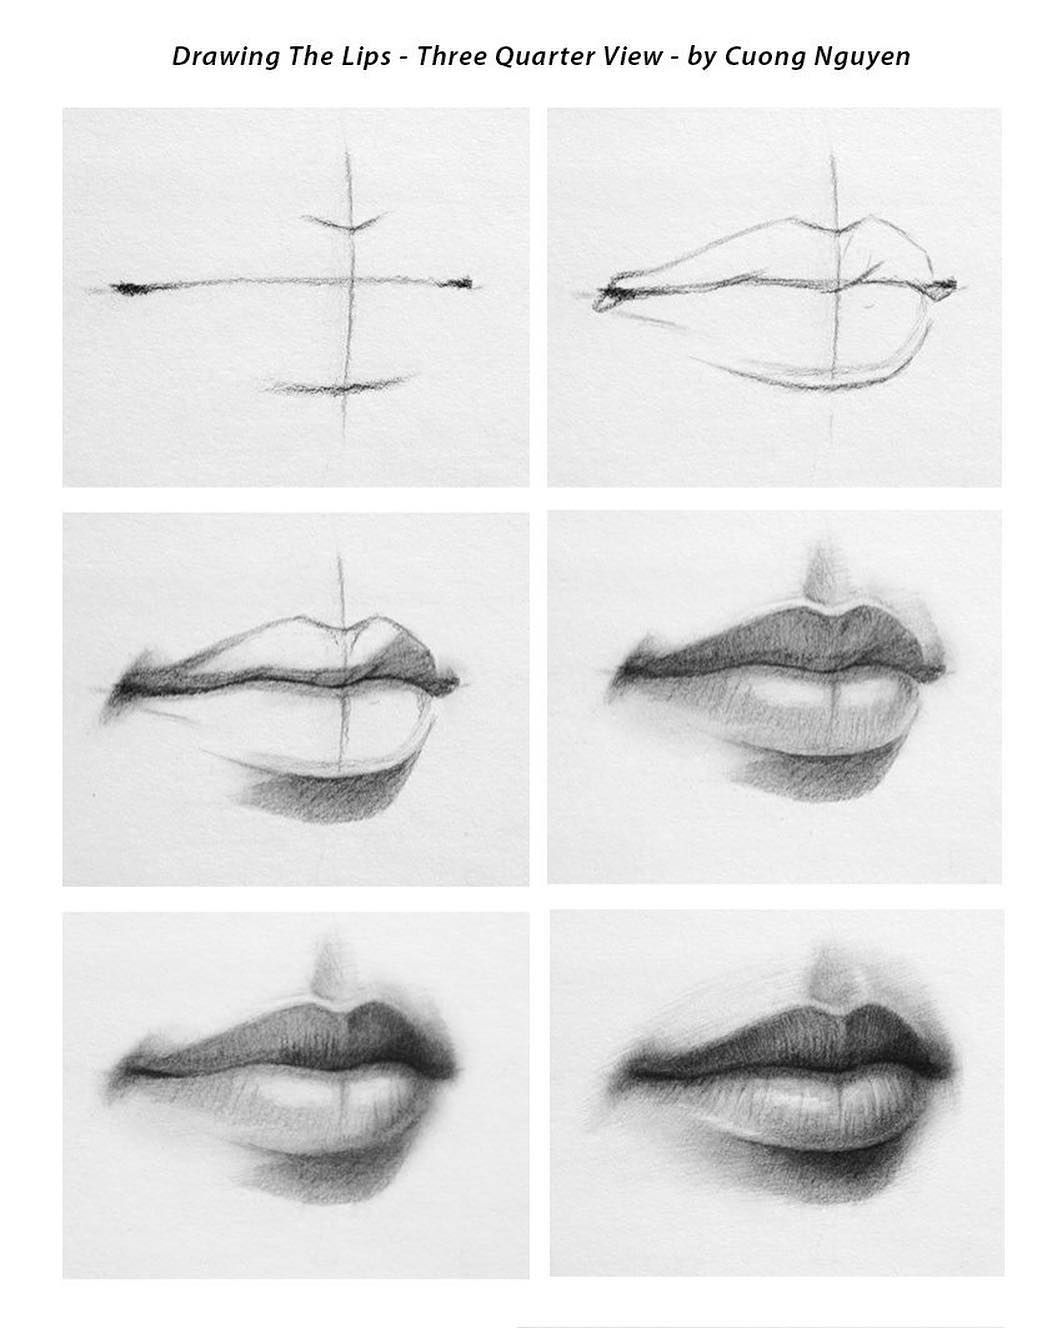 How To Draw Lips In Three Quarter View Drawing